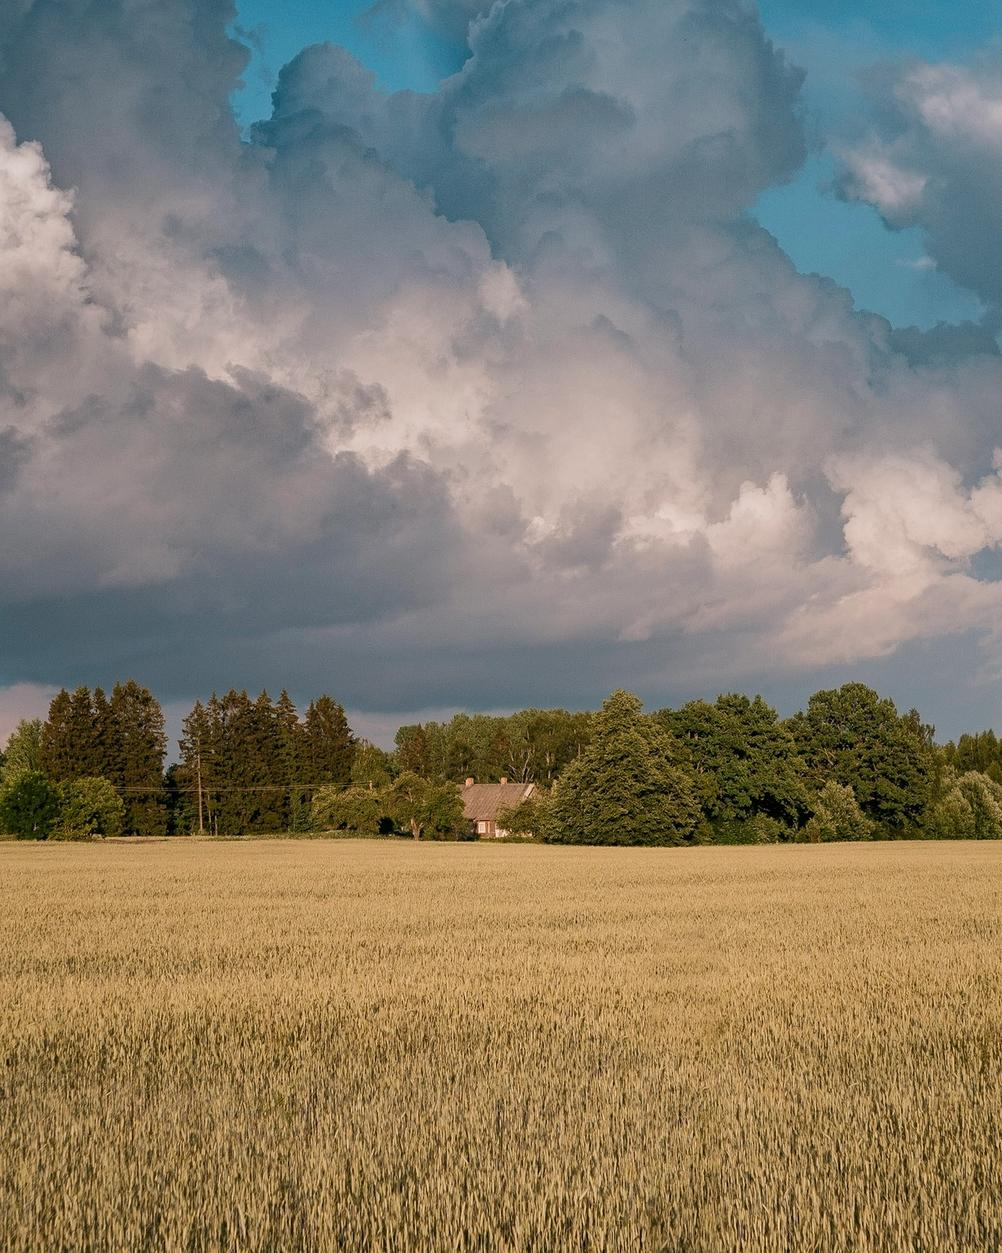 Photo of a house with field in foreground and impactful clouds in the background.